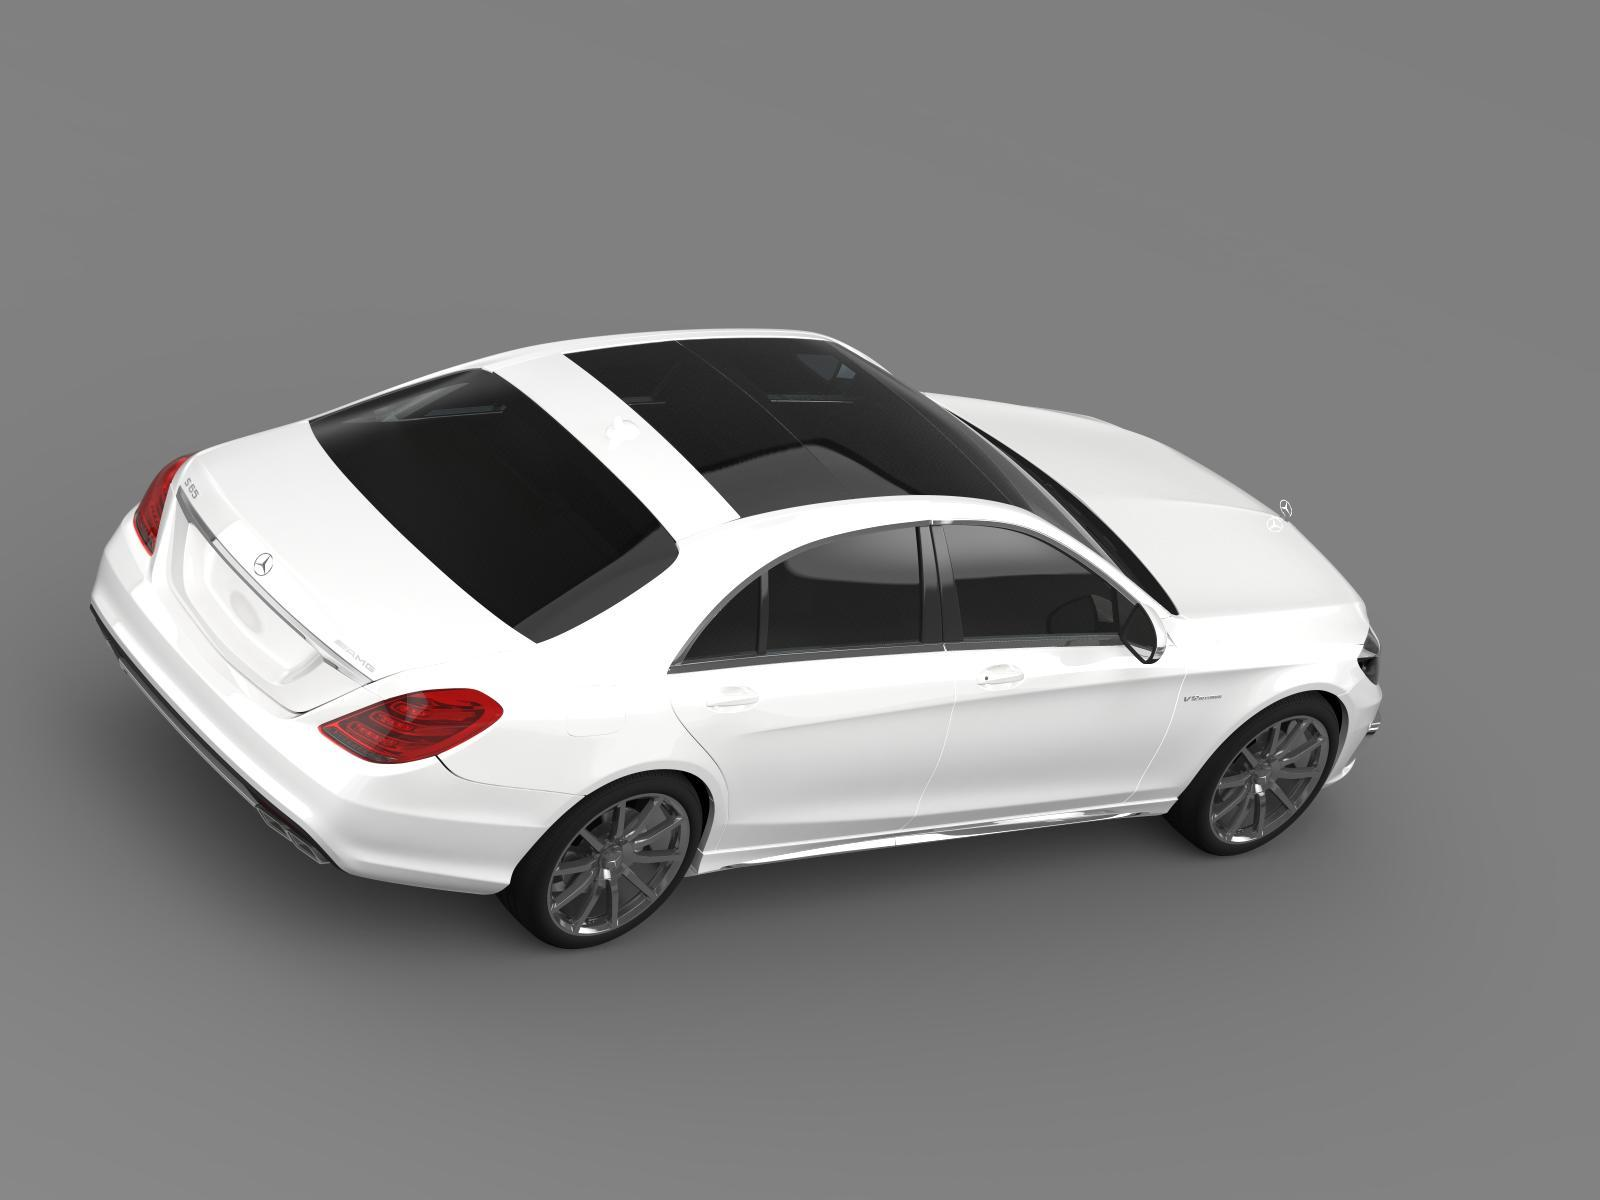 Mercedes benz s 65 amg w222 2014 by creator 3d 3docean for Mercedes benz creator